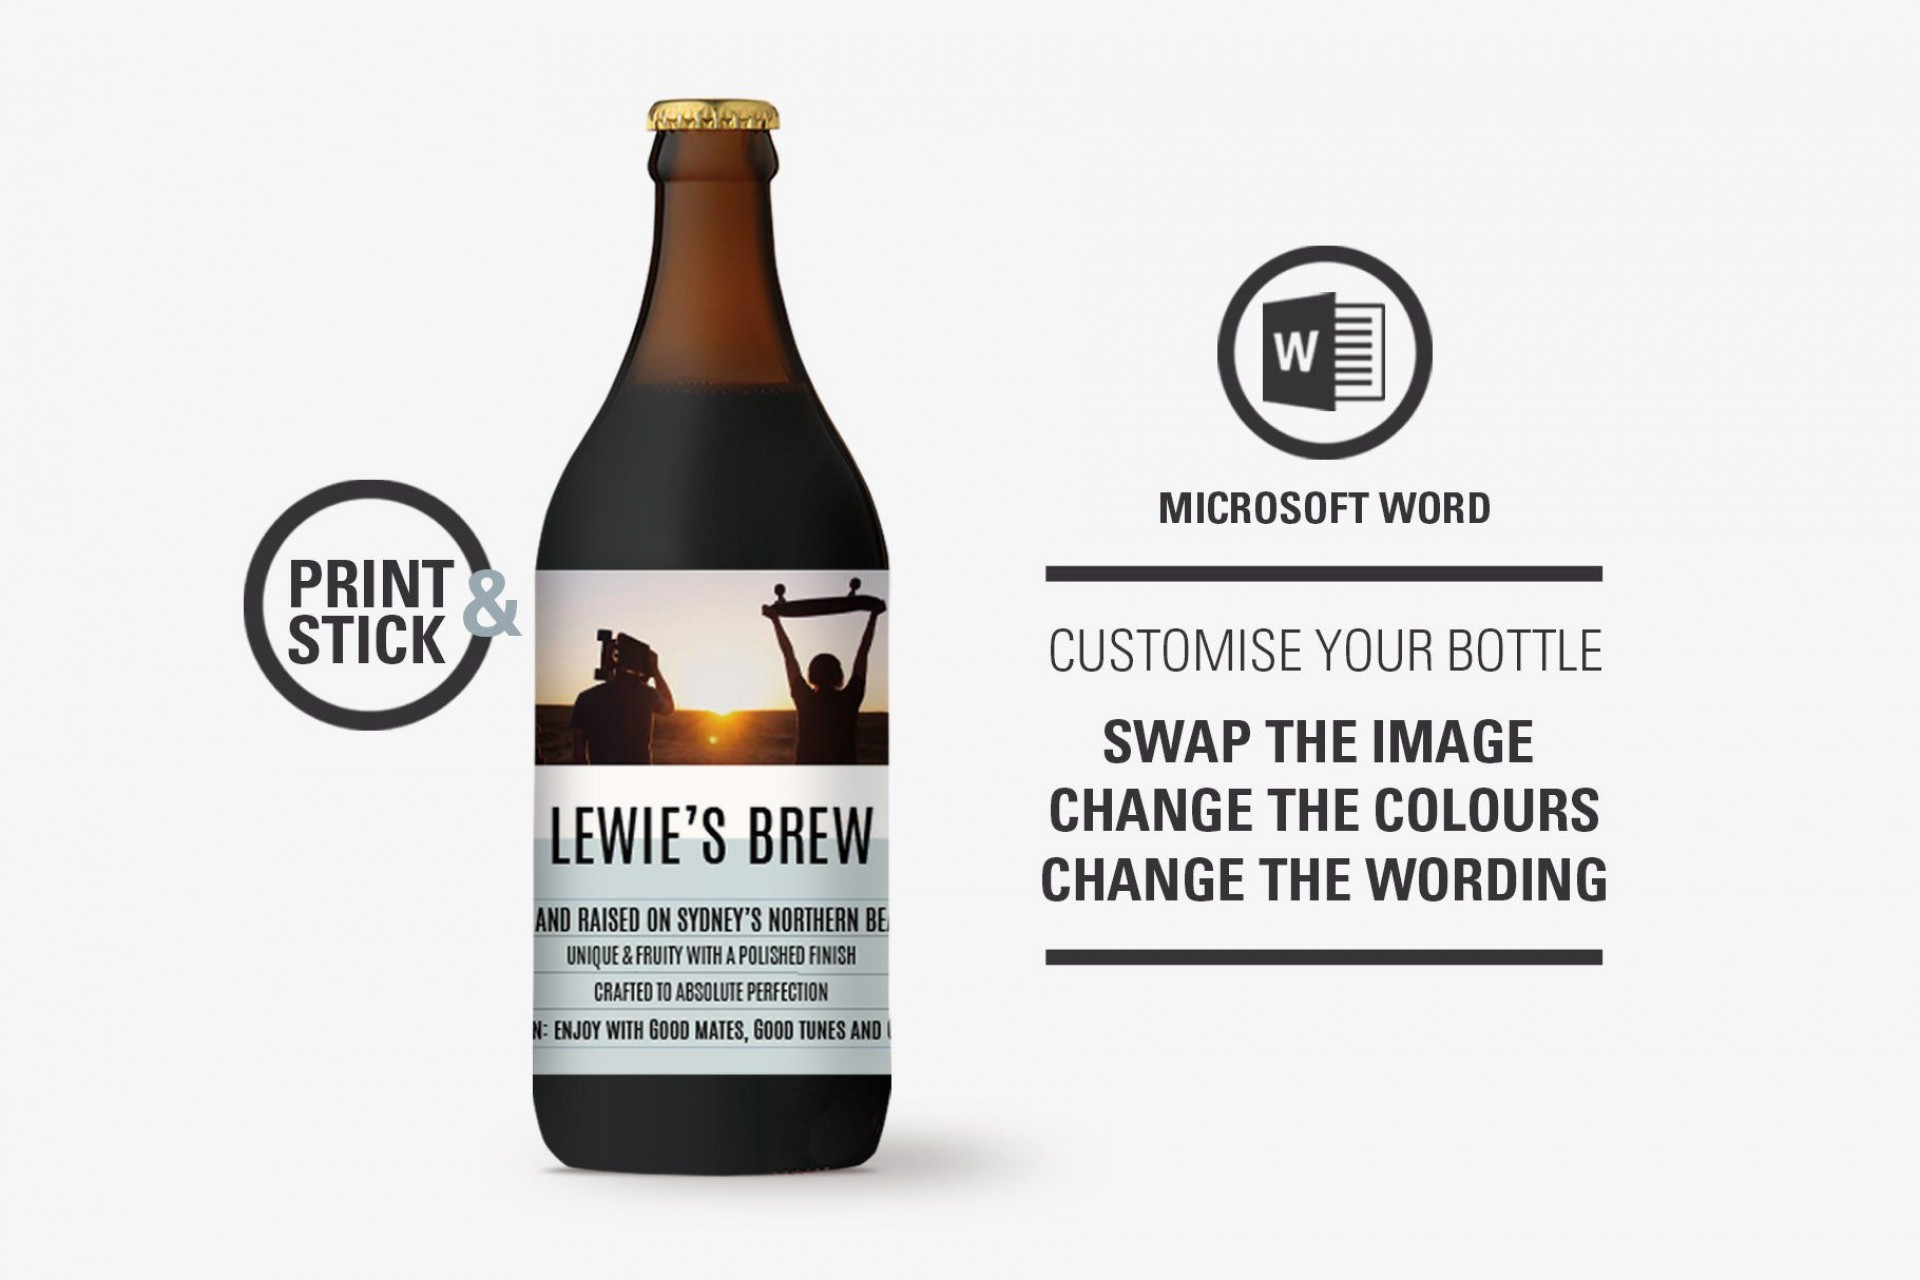 006 Stupendou Microsoft Word Beer Bottle Label Template Photo 1920